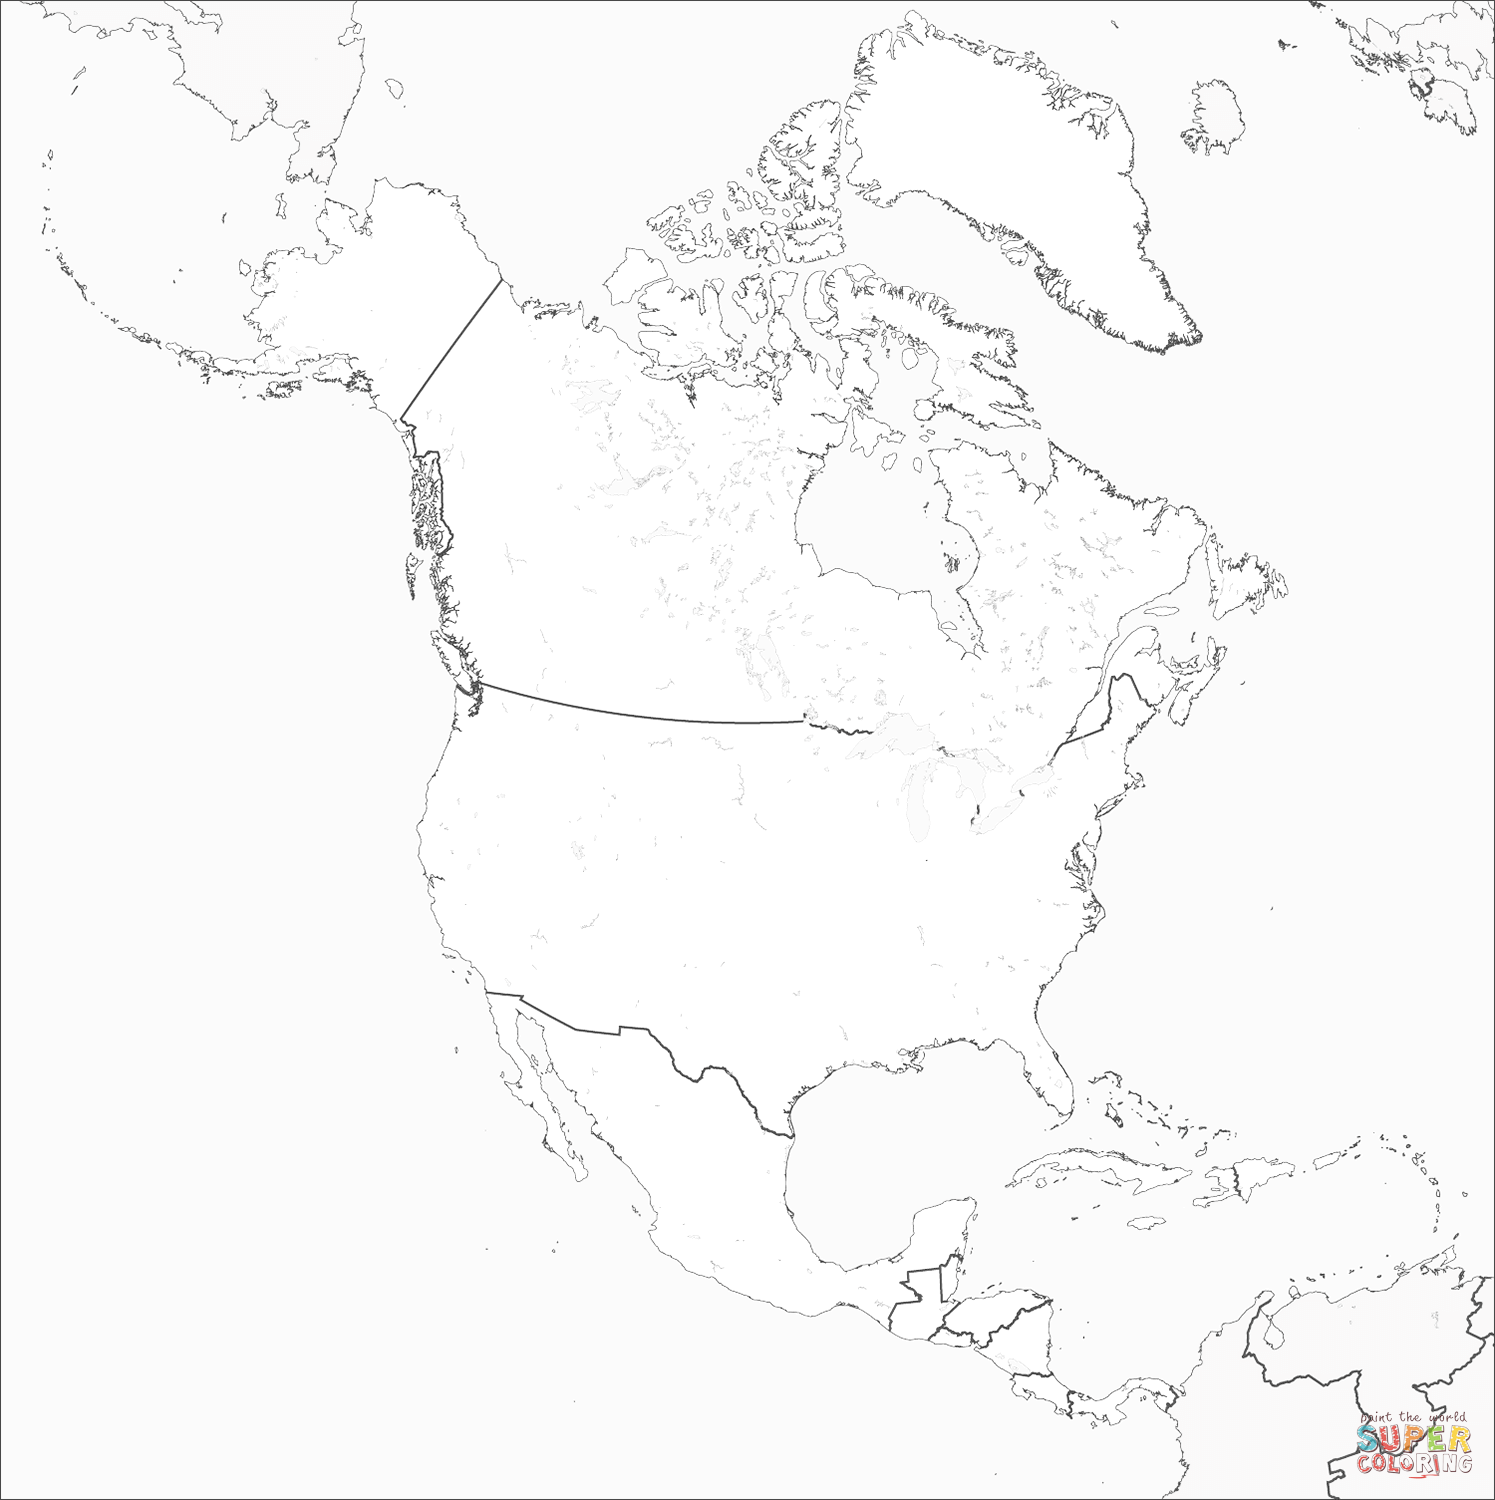 coloring map north america north america map coloring page free printable coloring north america map coloring